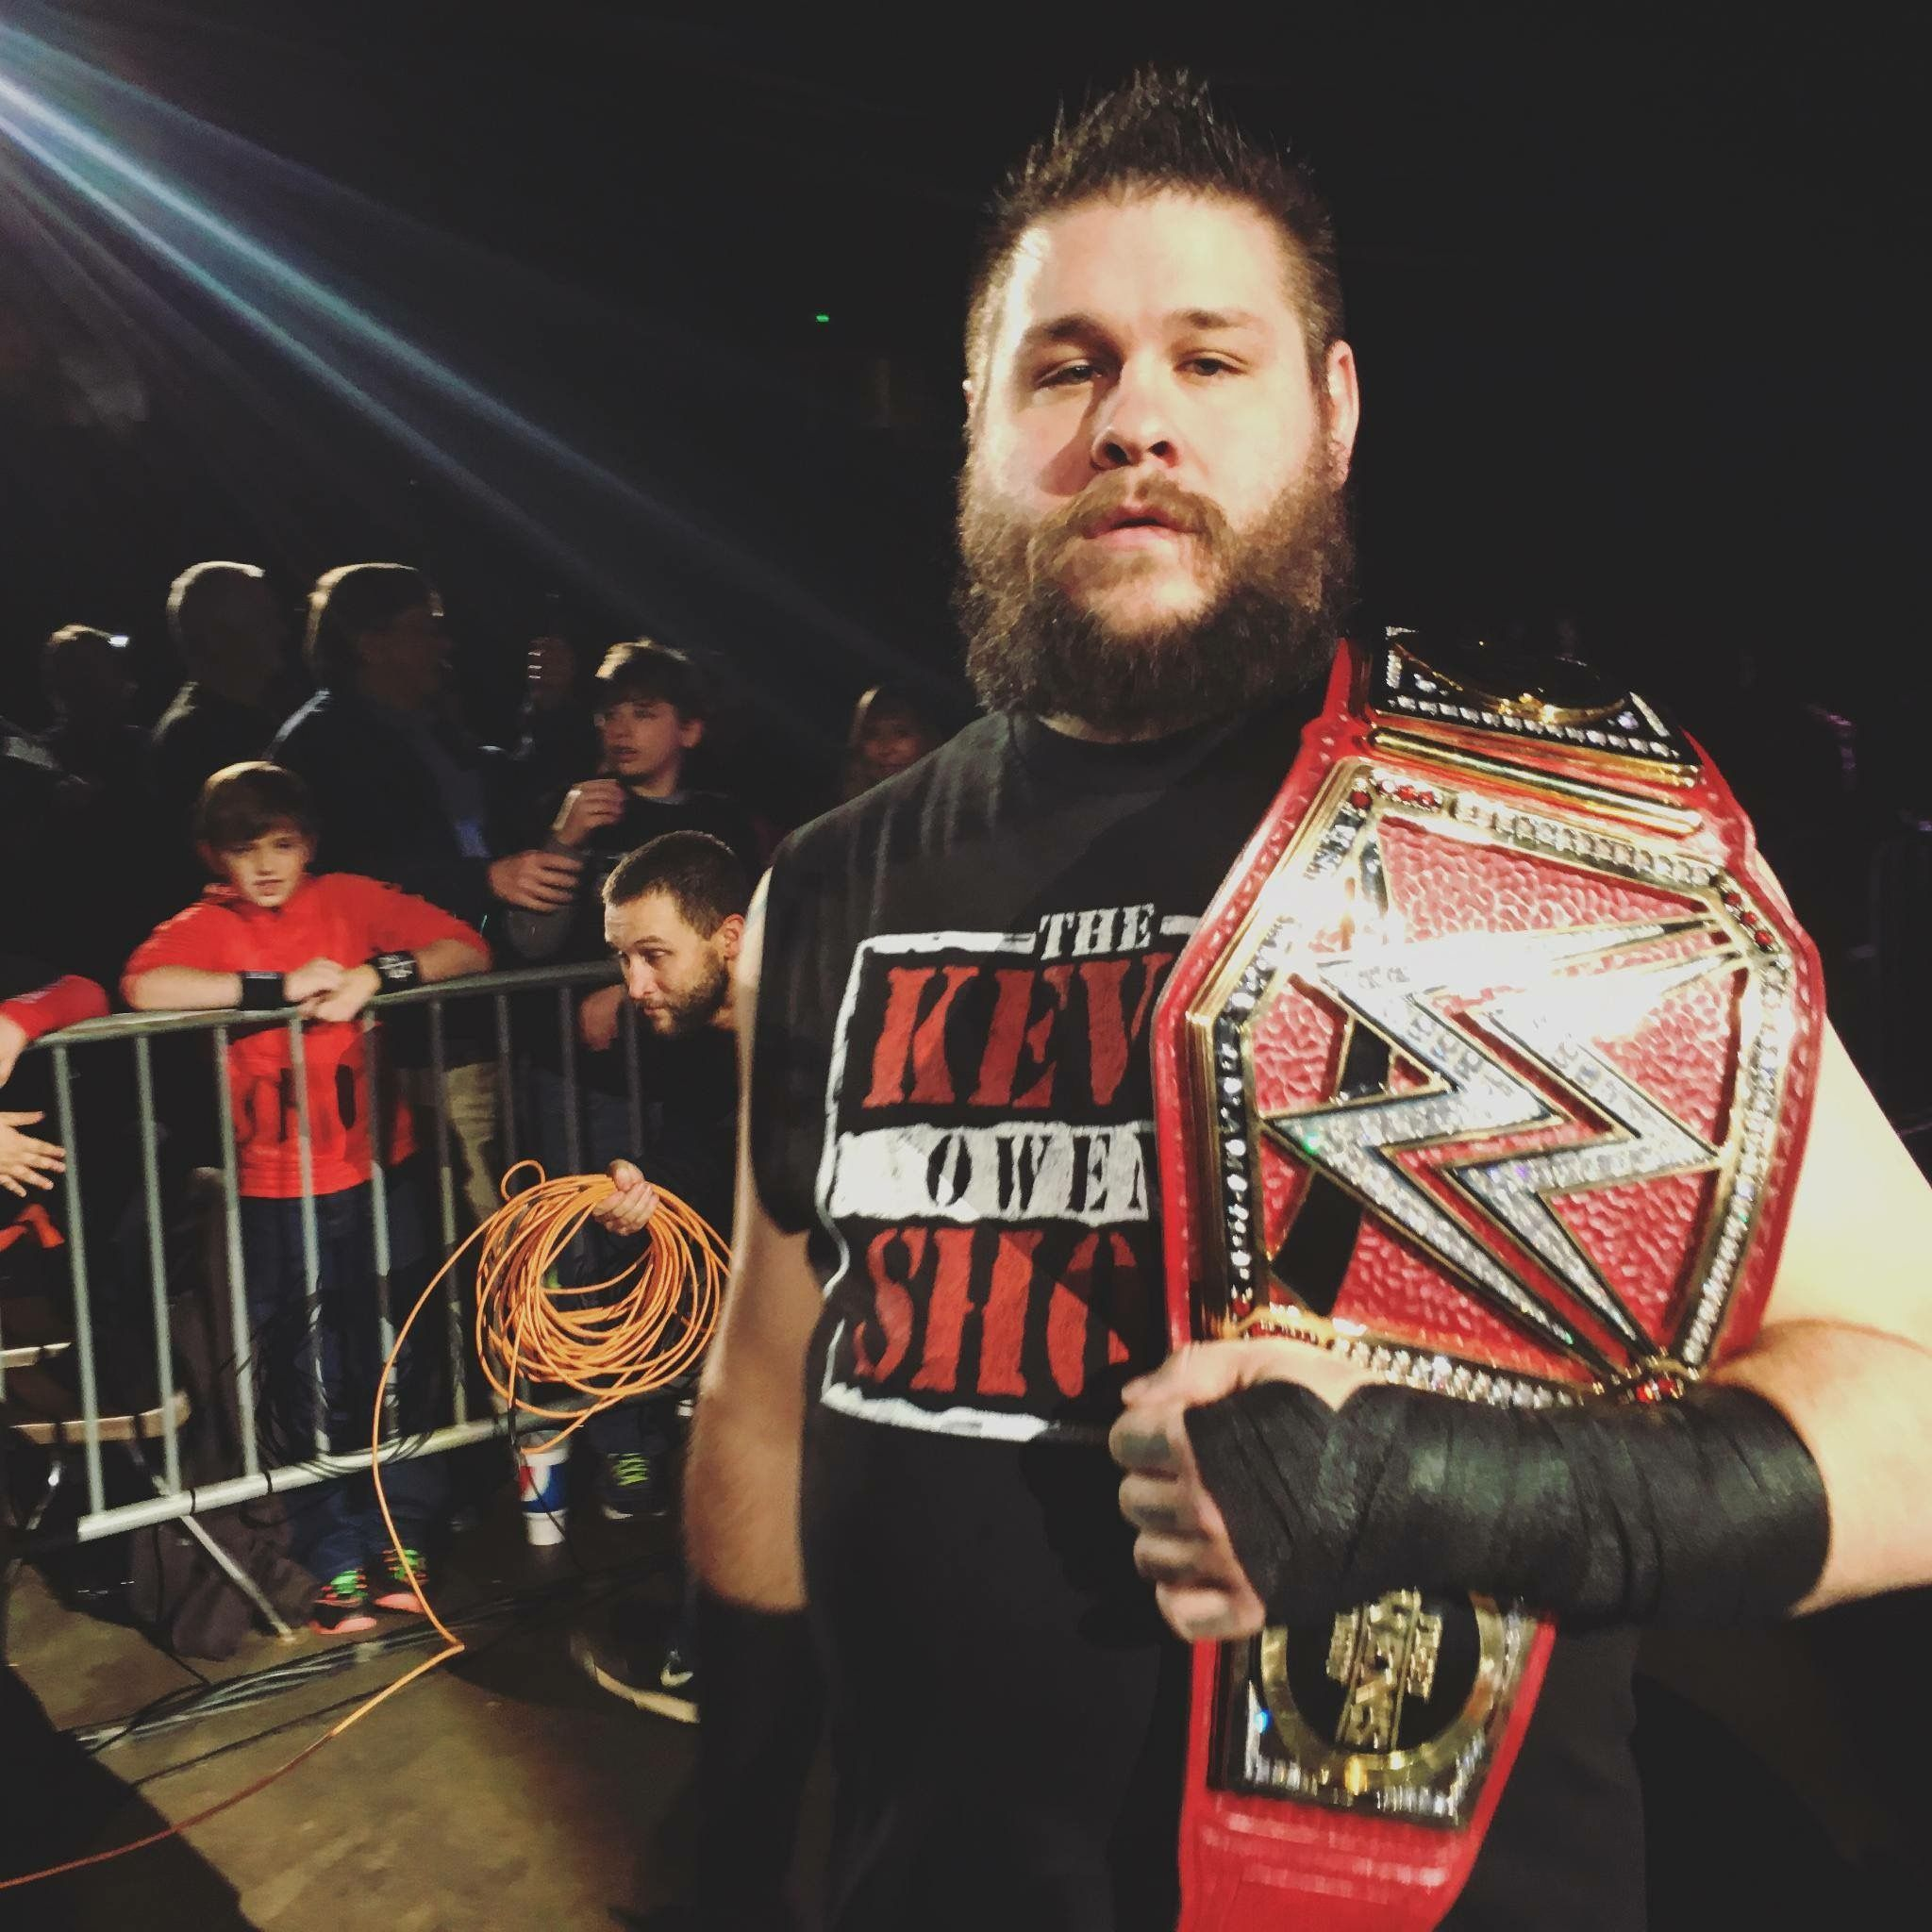 ⠀⠀▸ Kevin Owens┋ @FightOwensFight ╱ OFFICIAL TWITTER ACCOUNT! ✔ B2ee55191e061922fbdcebb5220d875b